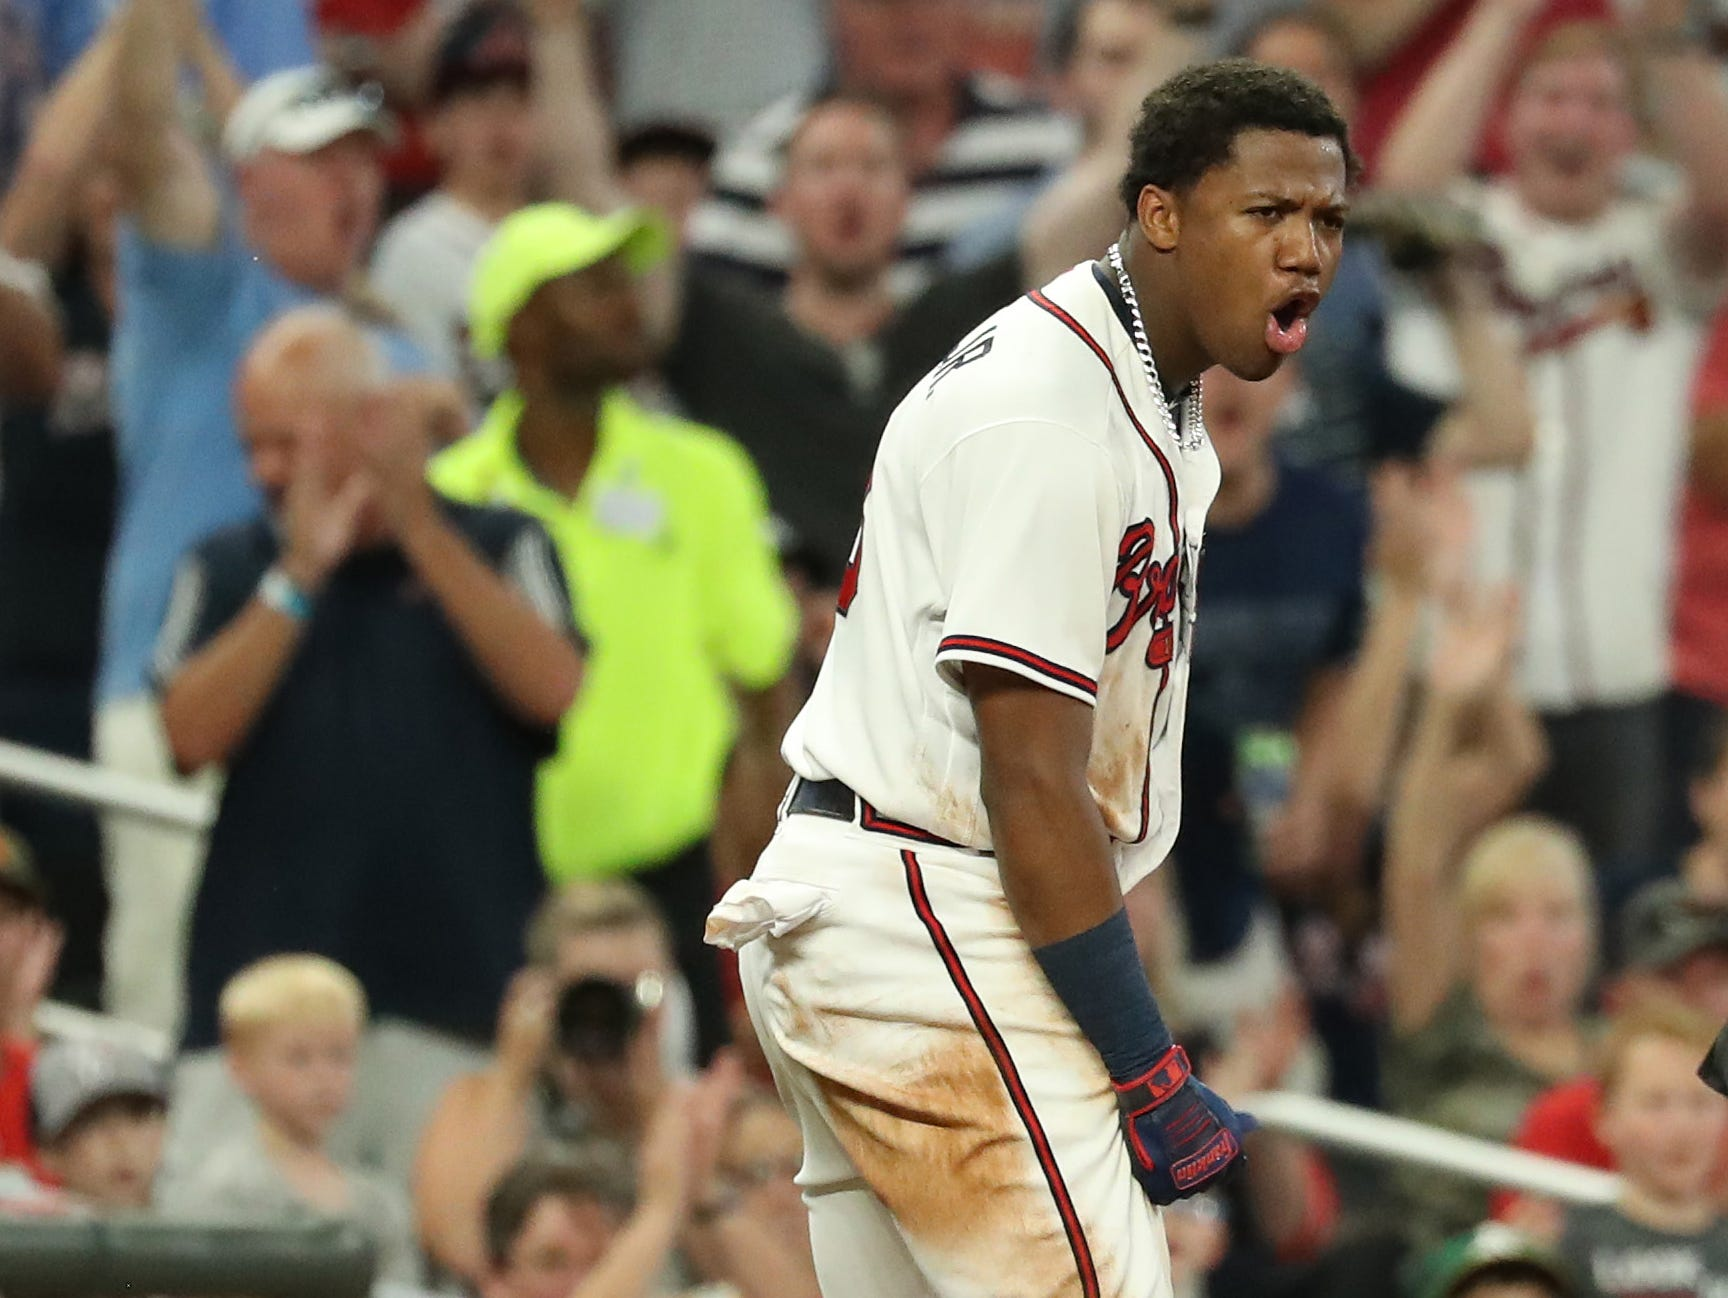 15. Ronald Acuna Jr., Atlanta Braves outfielder.